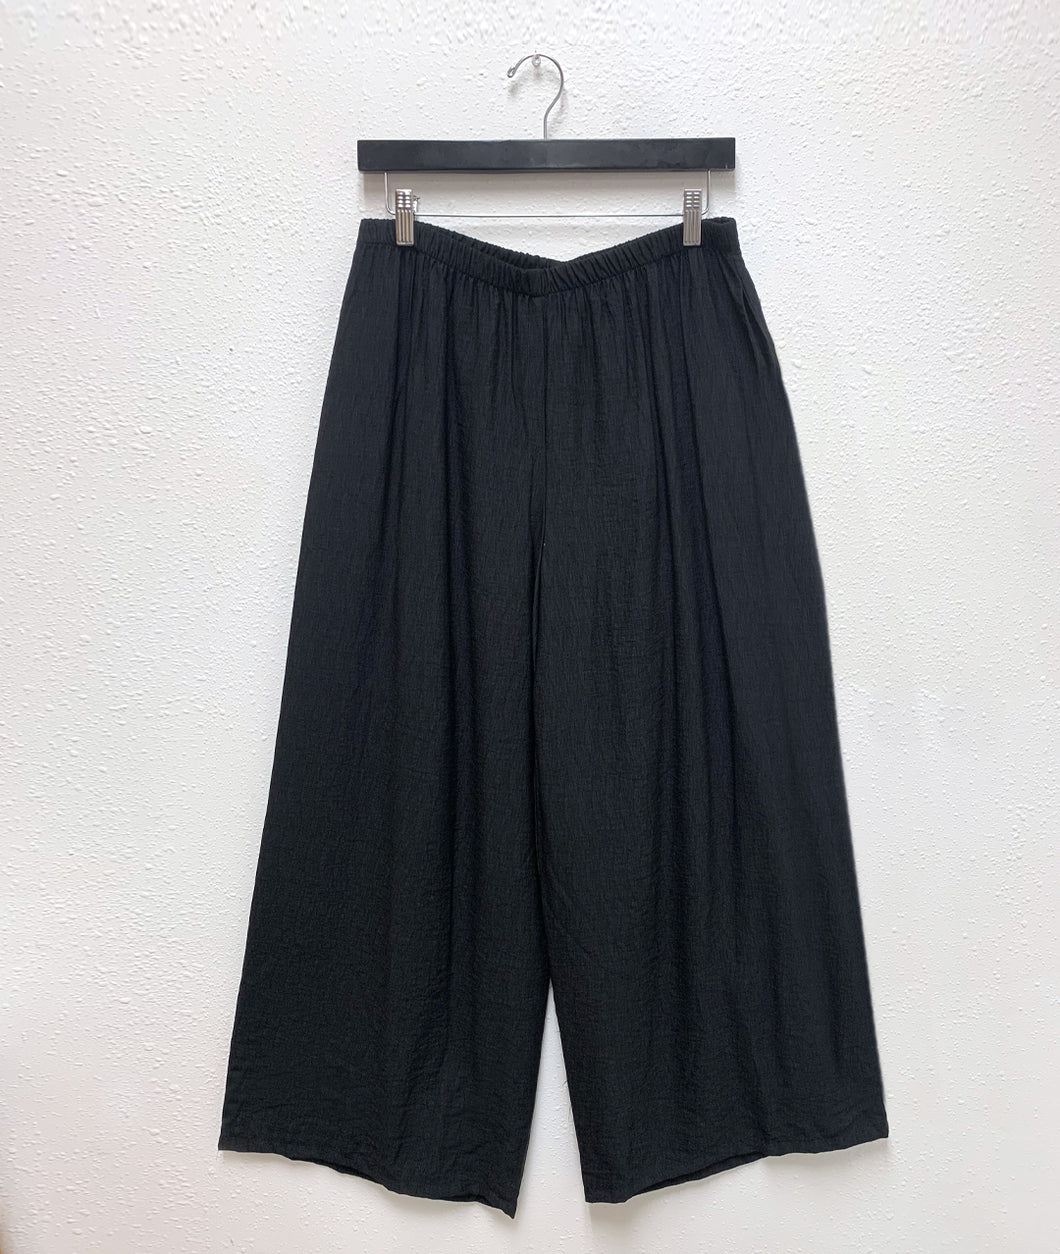 wide leg black pant with an elastic waistband